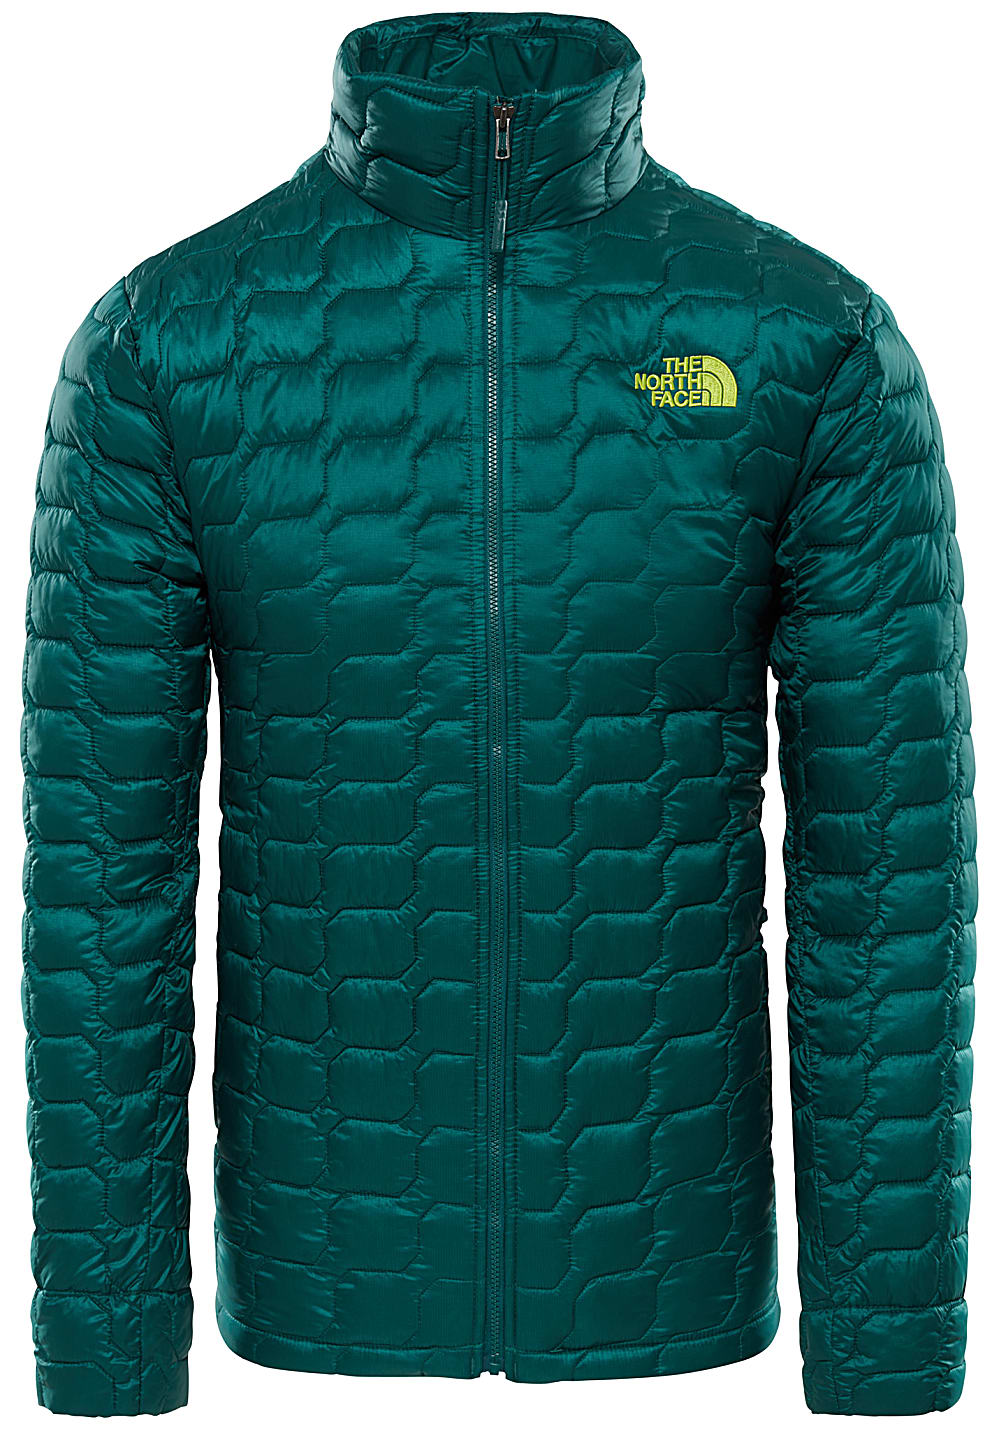 e8c4cea119 THE NORTH FACE Thermoball - Outdoor Jacket for Men - Green - Planet Sports